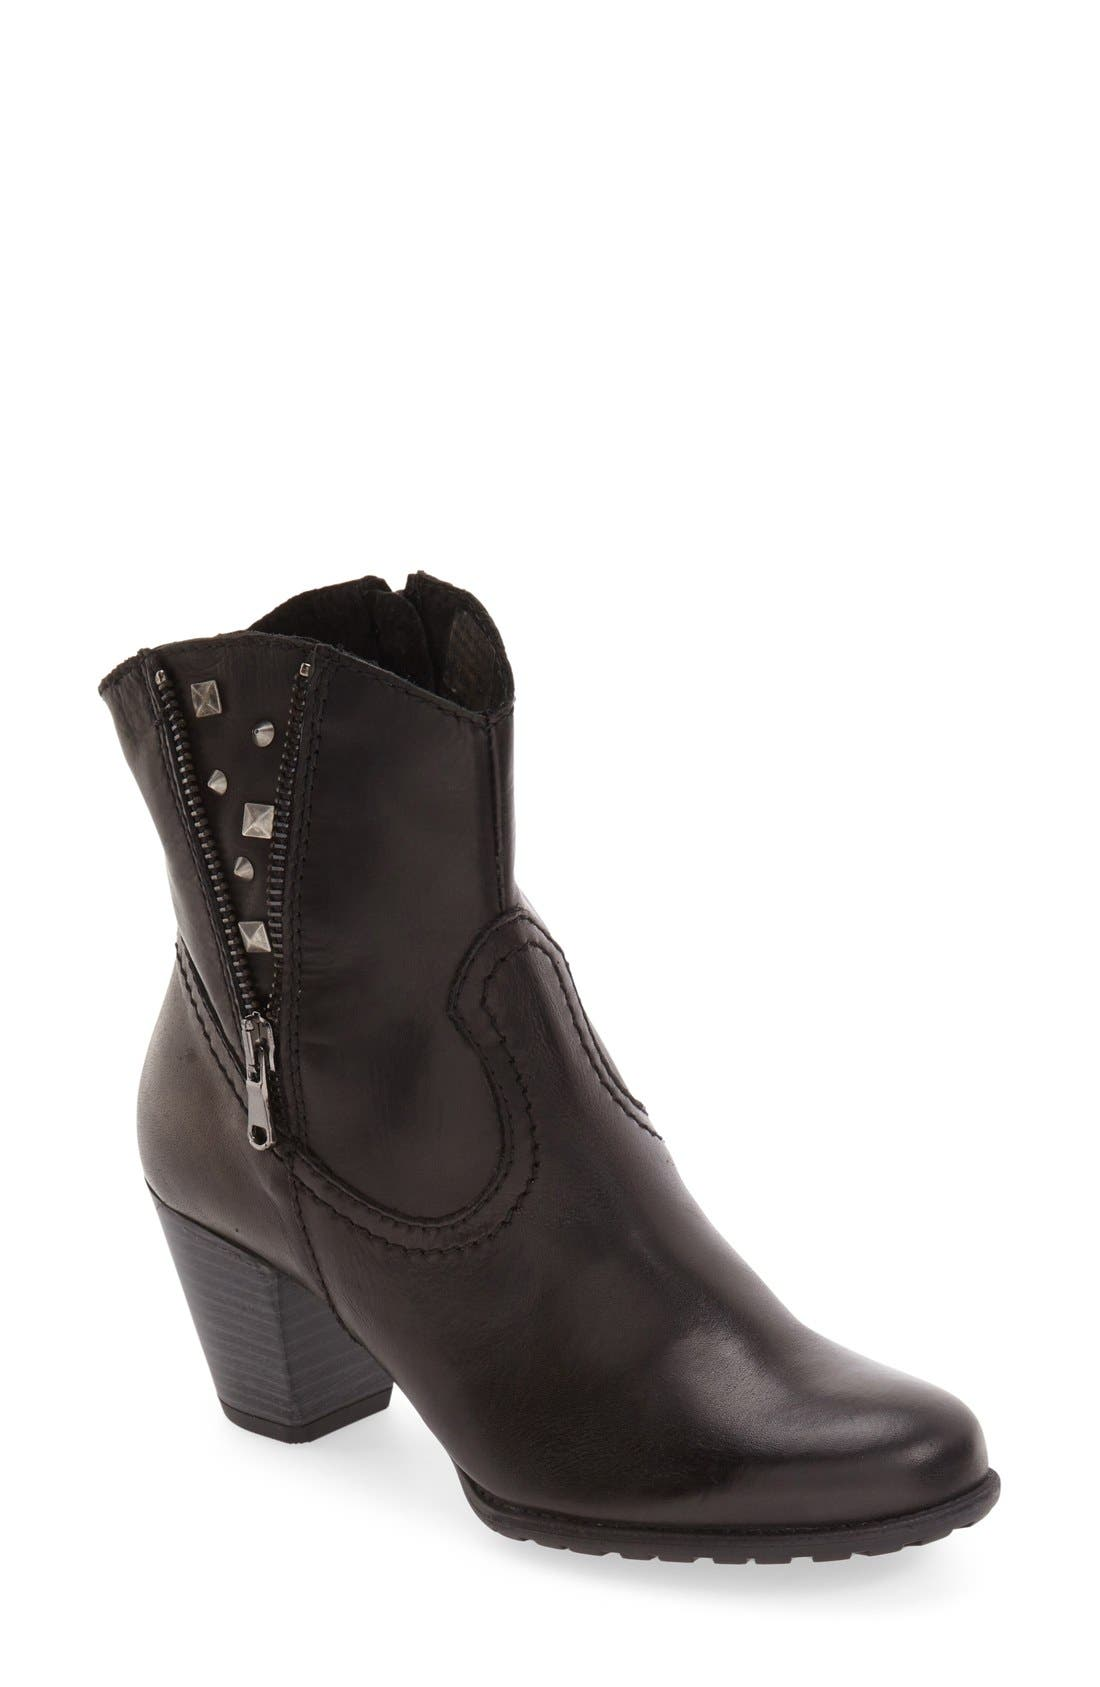 Alternate Image 1 Selected - Napa Flex 'Kiki' Studded Bootie (Women)